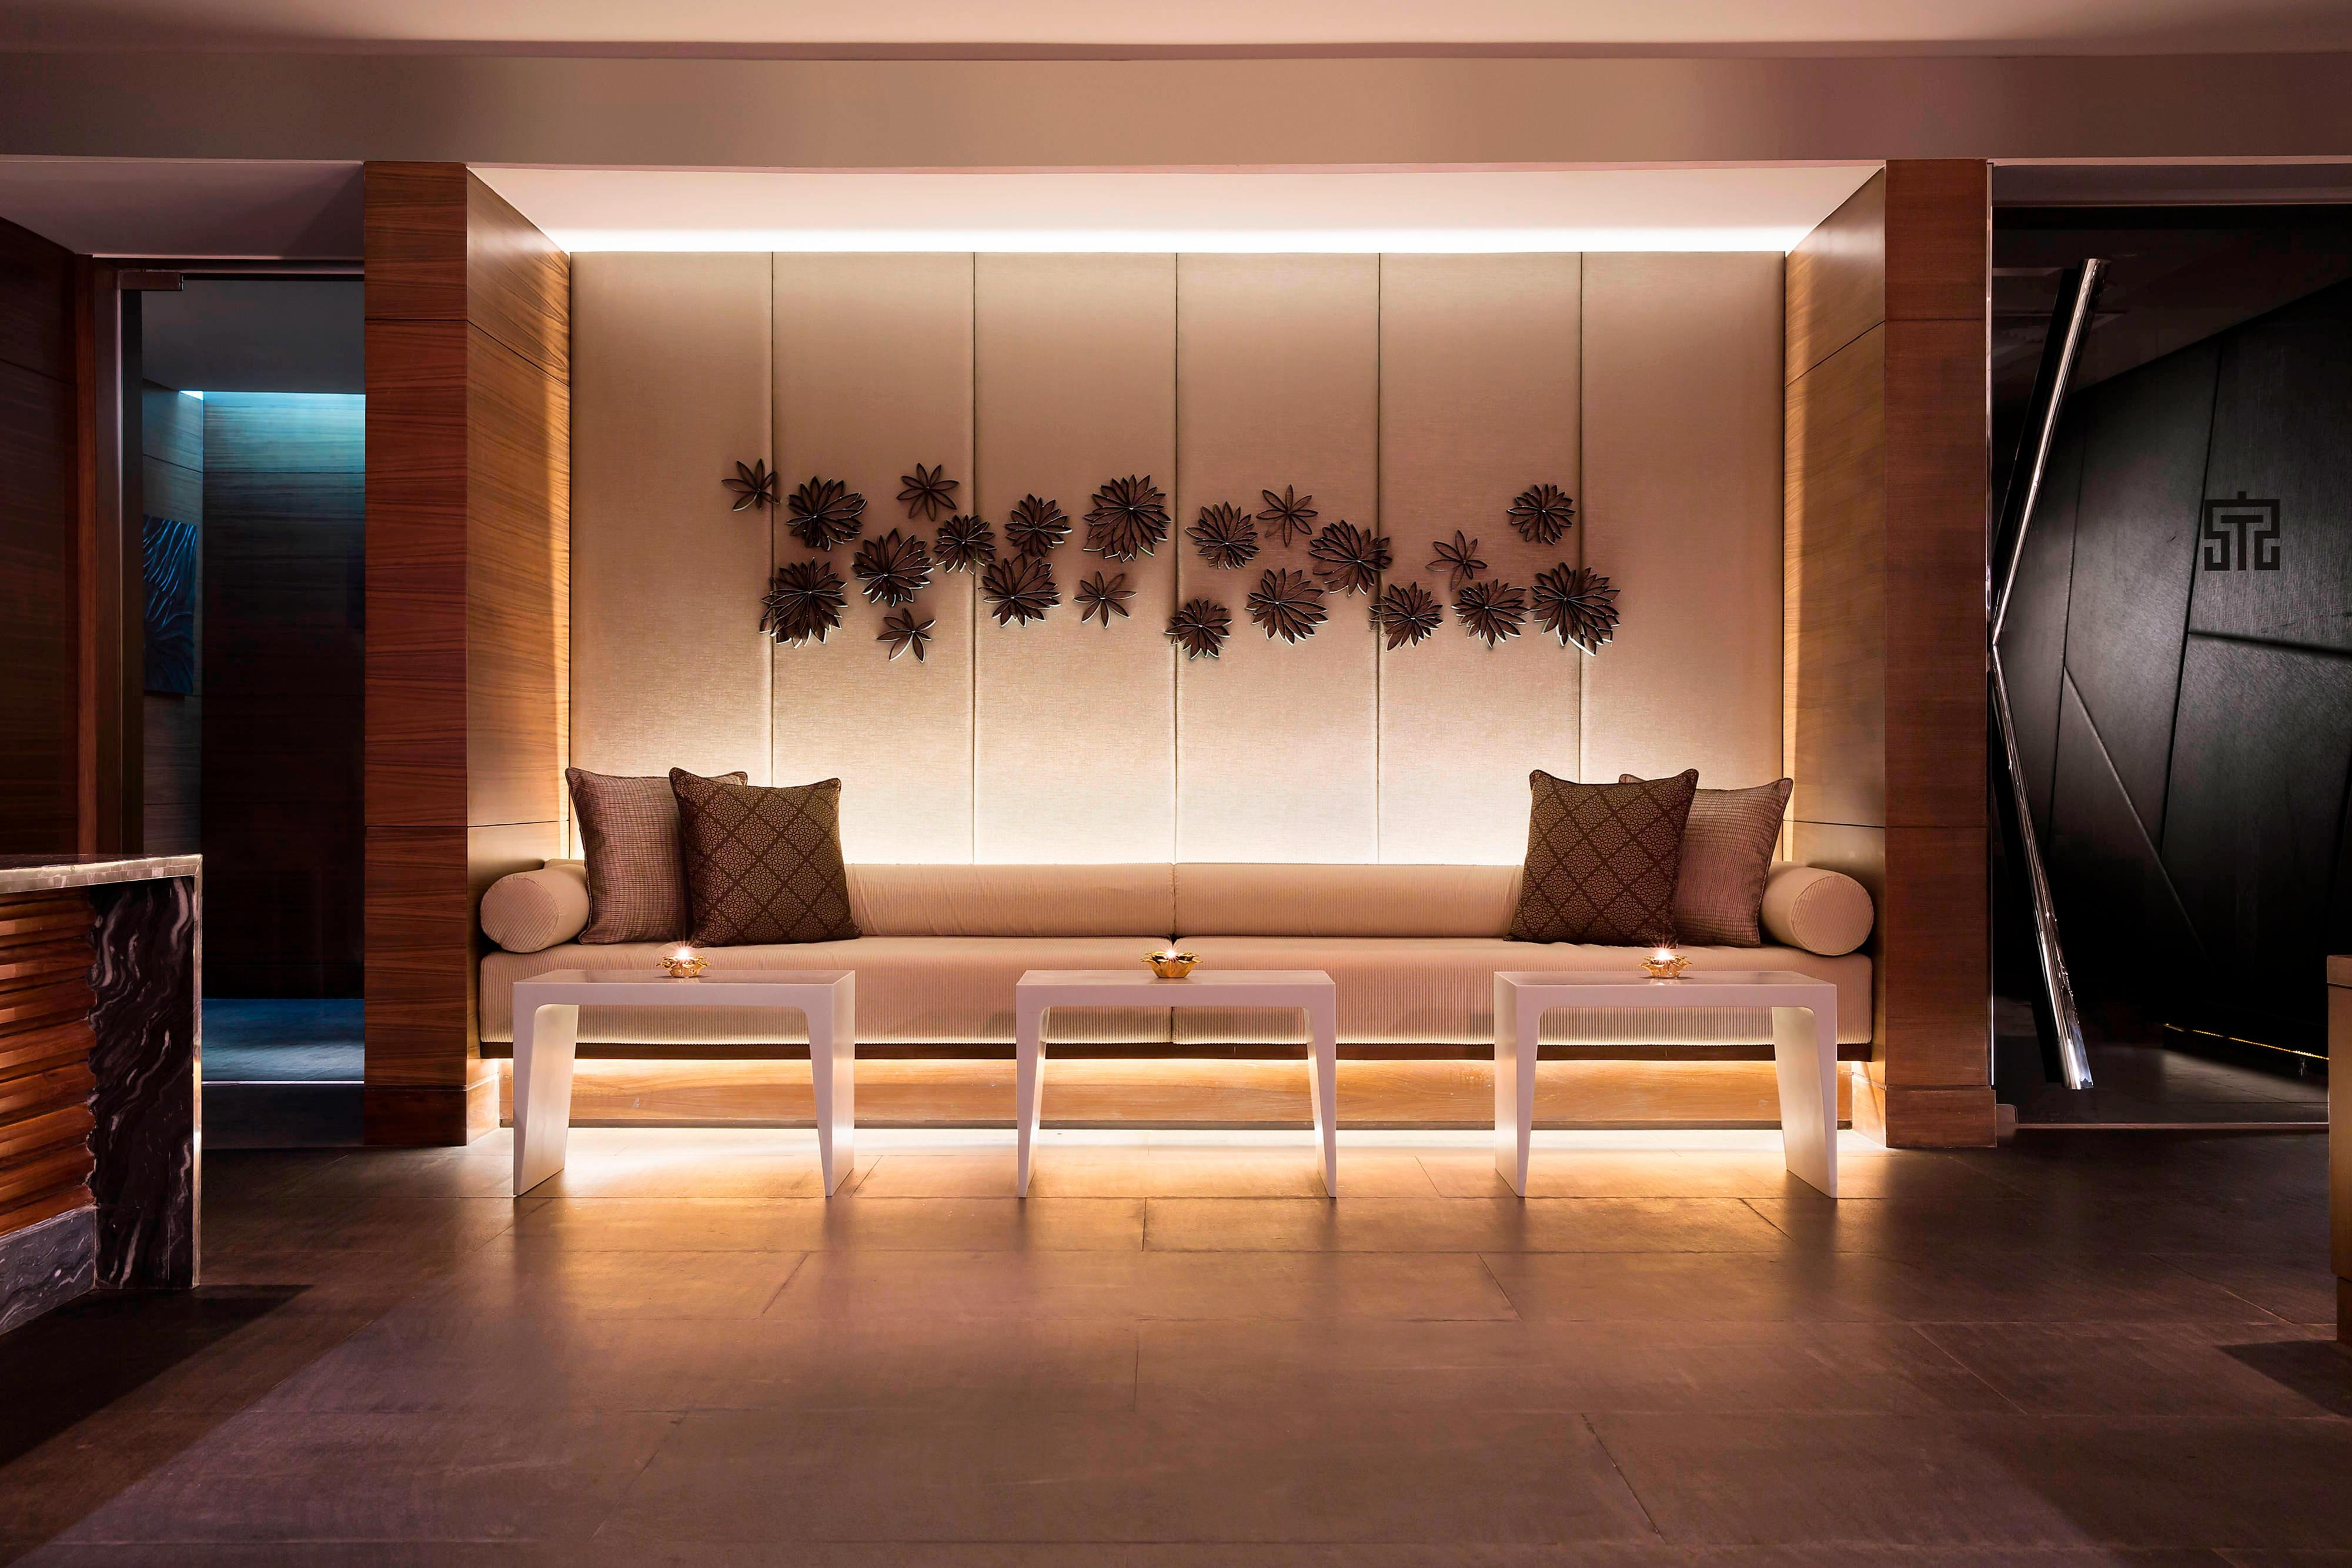 New Delhi Spa reception area